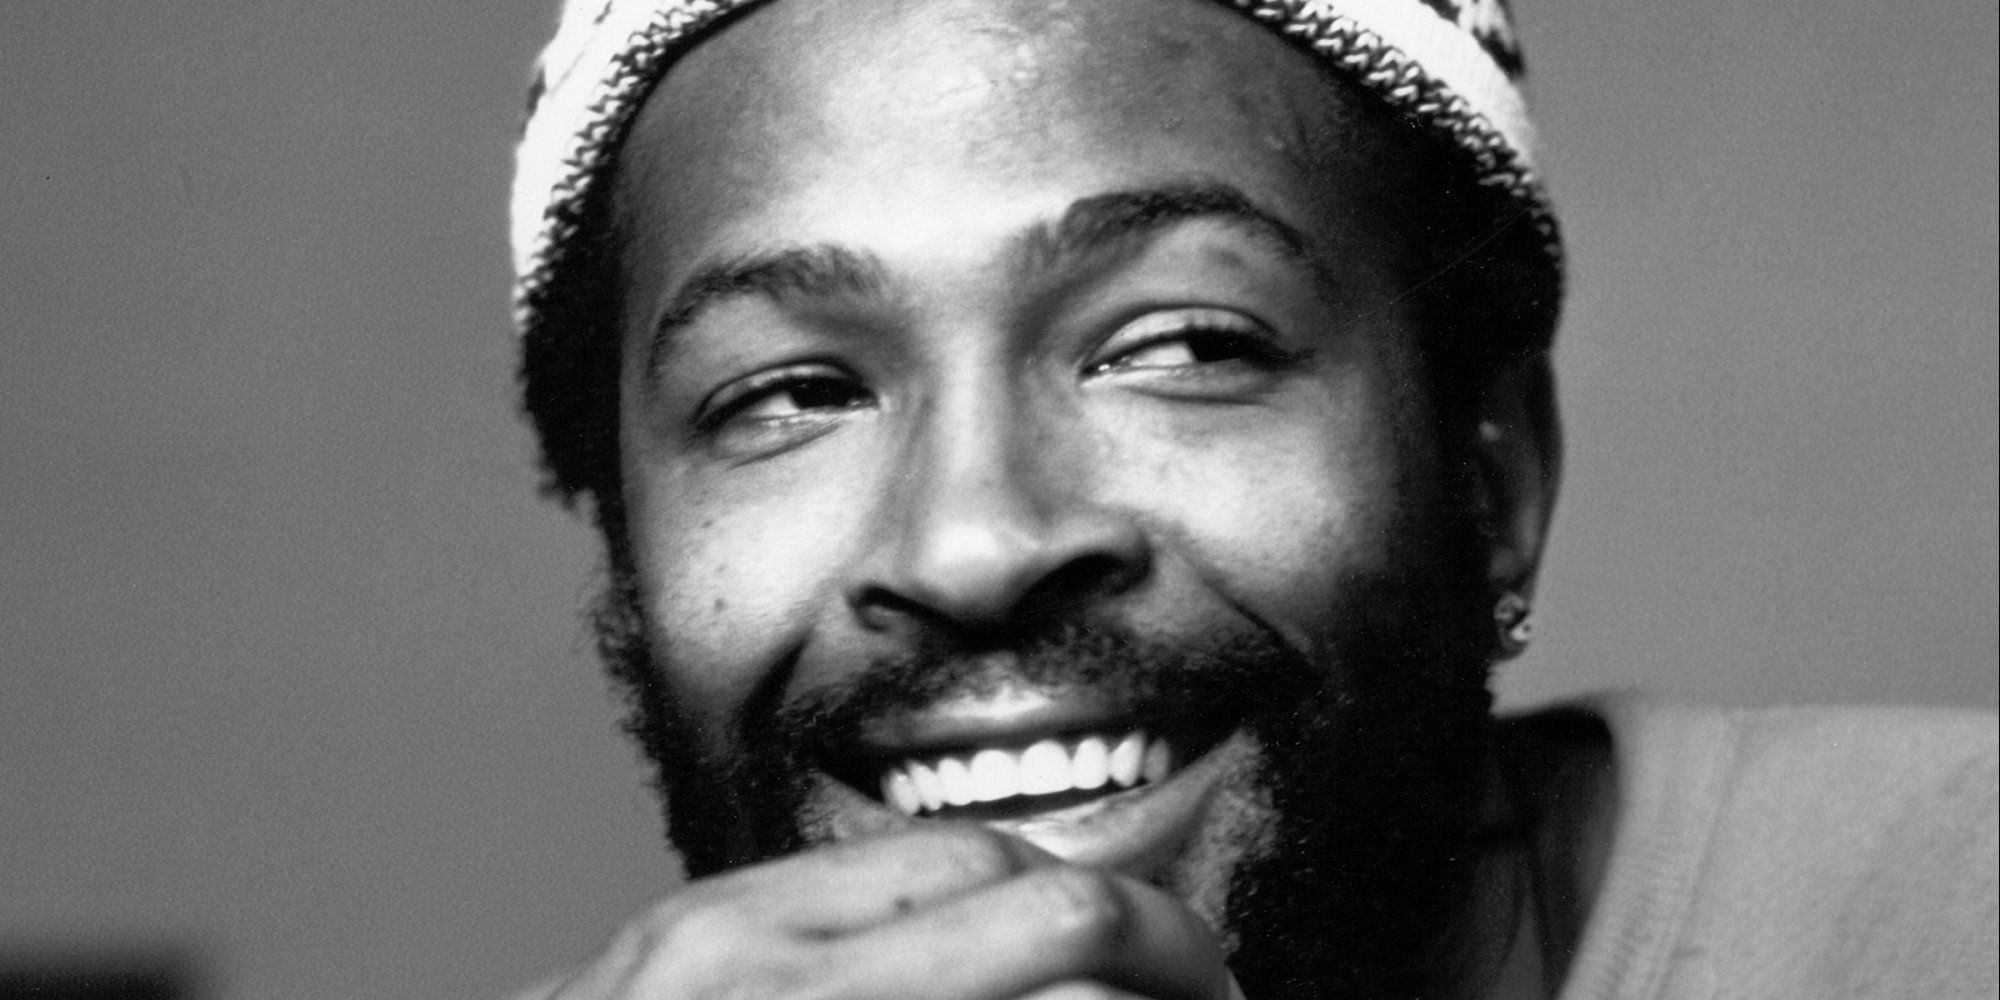 Pictures of marvin gaye